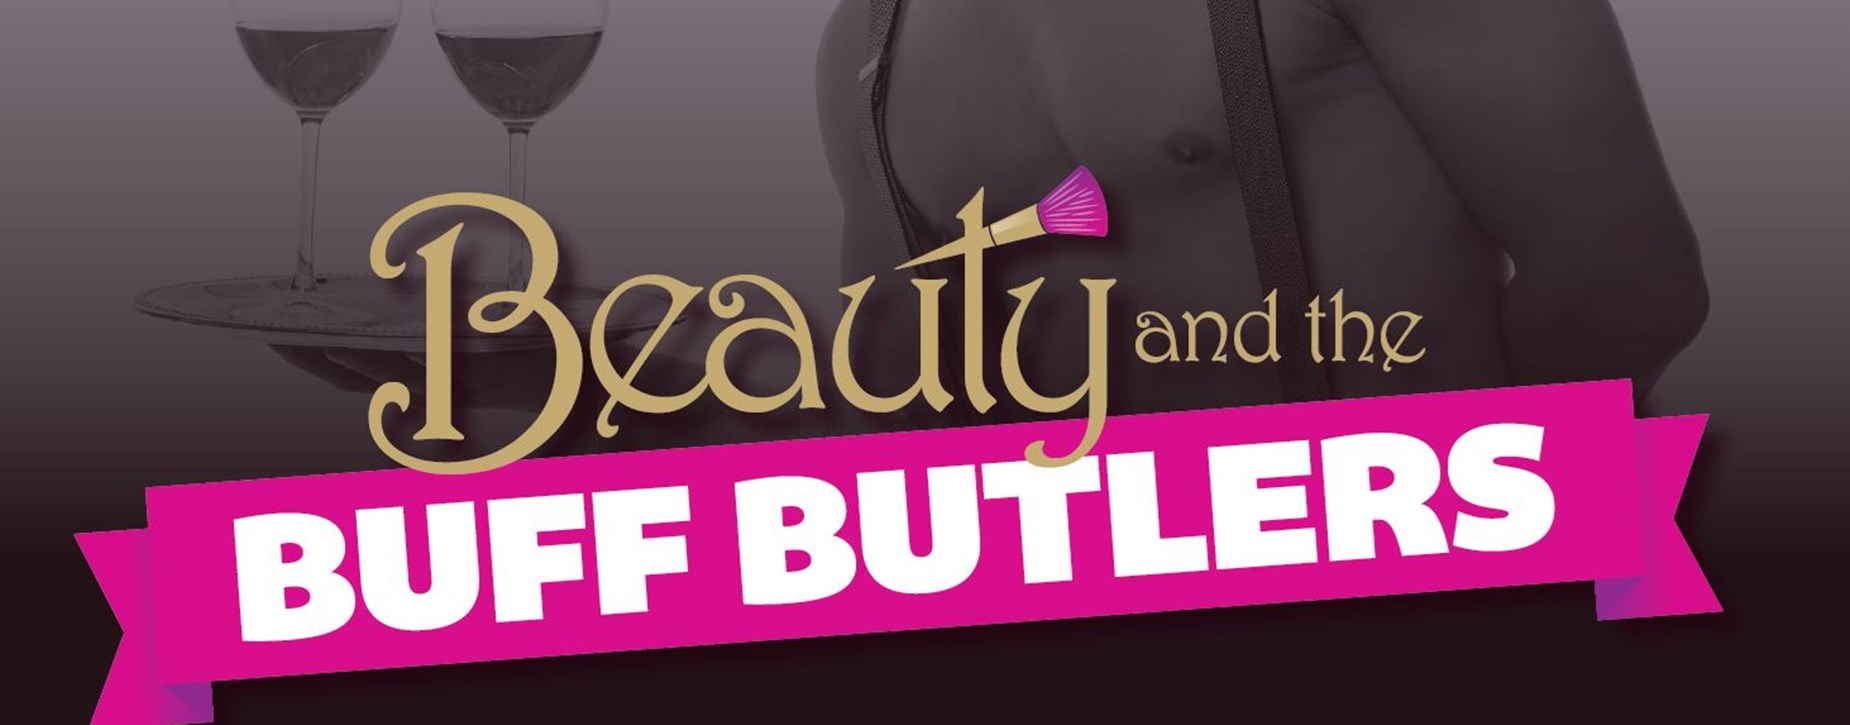 Beauty & The Buff Butlers